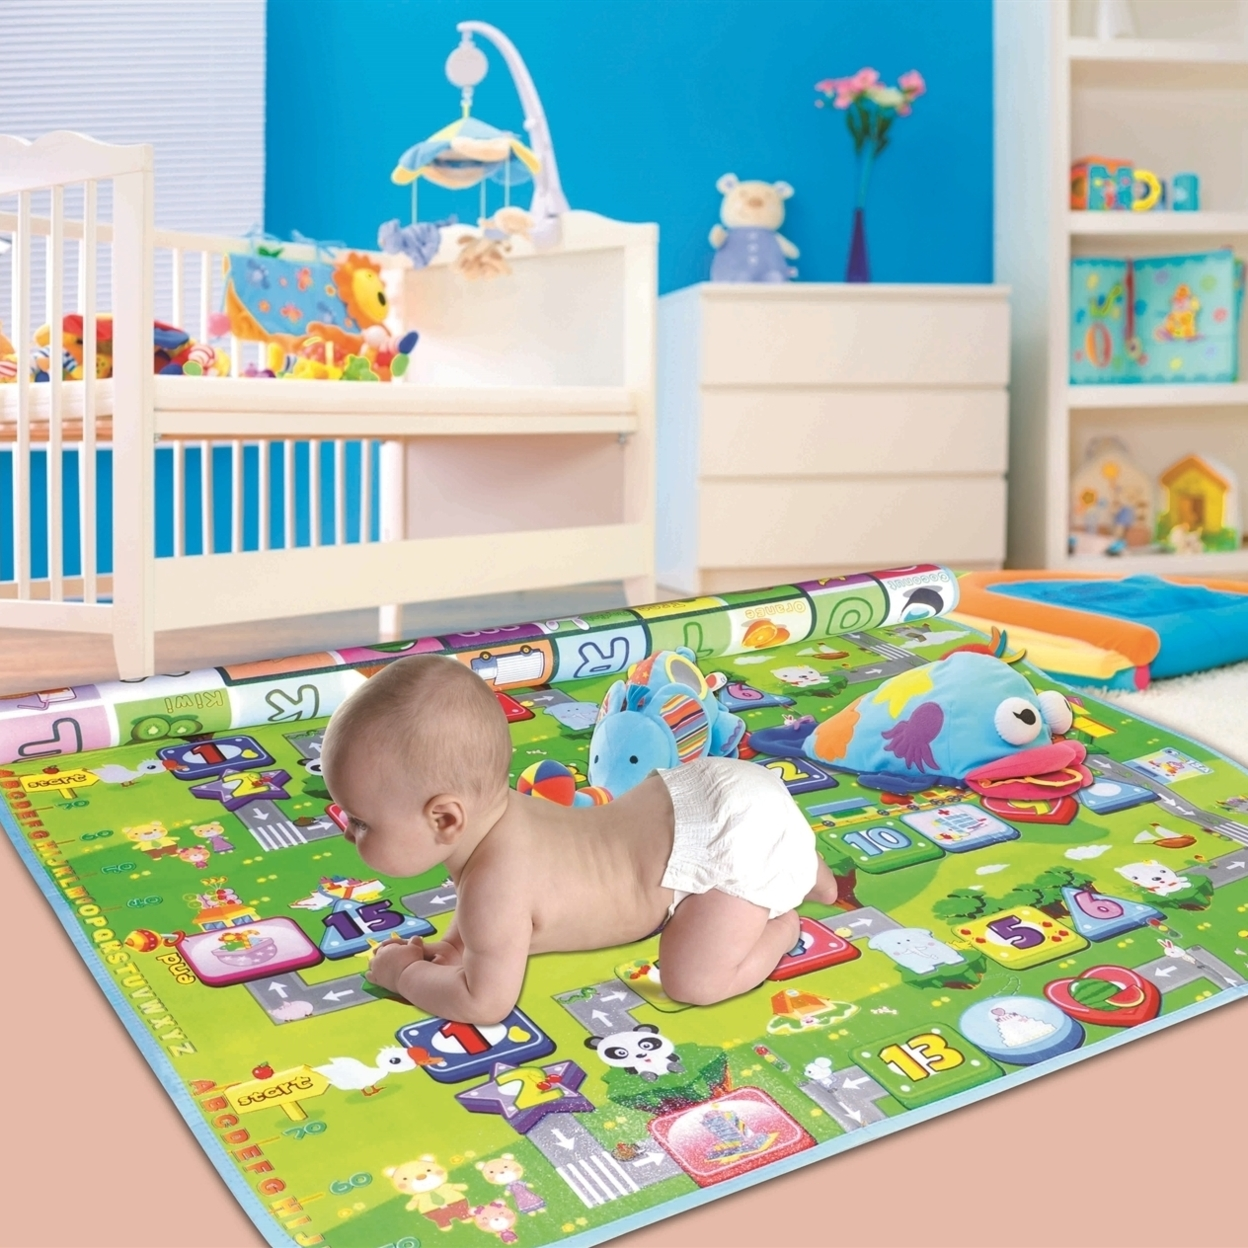 Two Elephants™ Cotton Double-Sided Interactive Play Mat 565f8347a3771cd15d8b4728